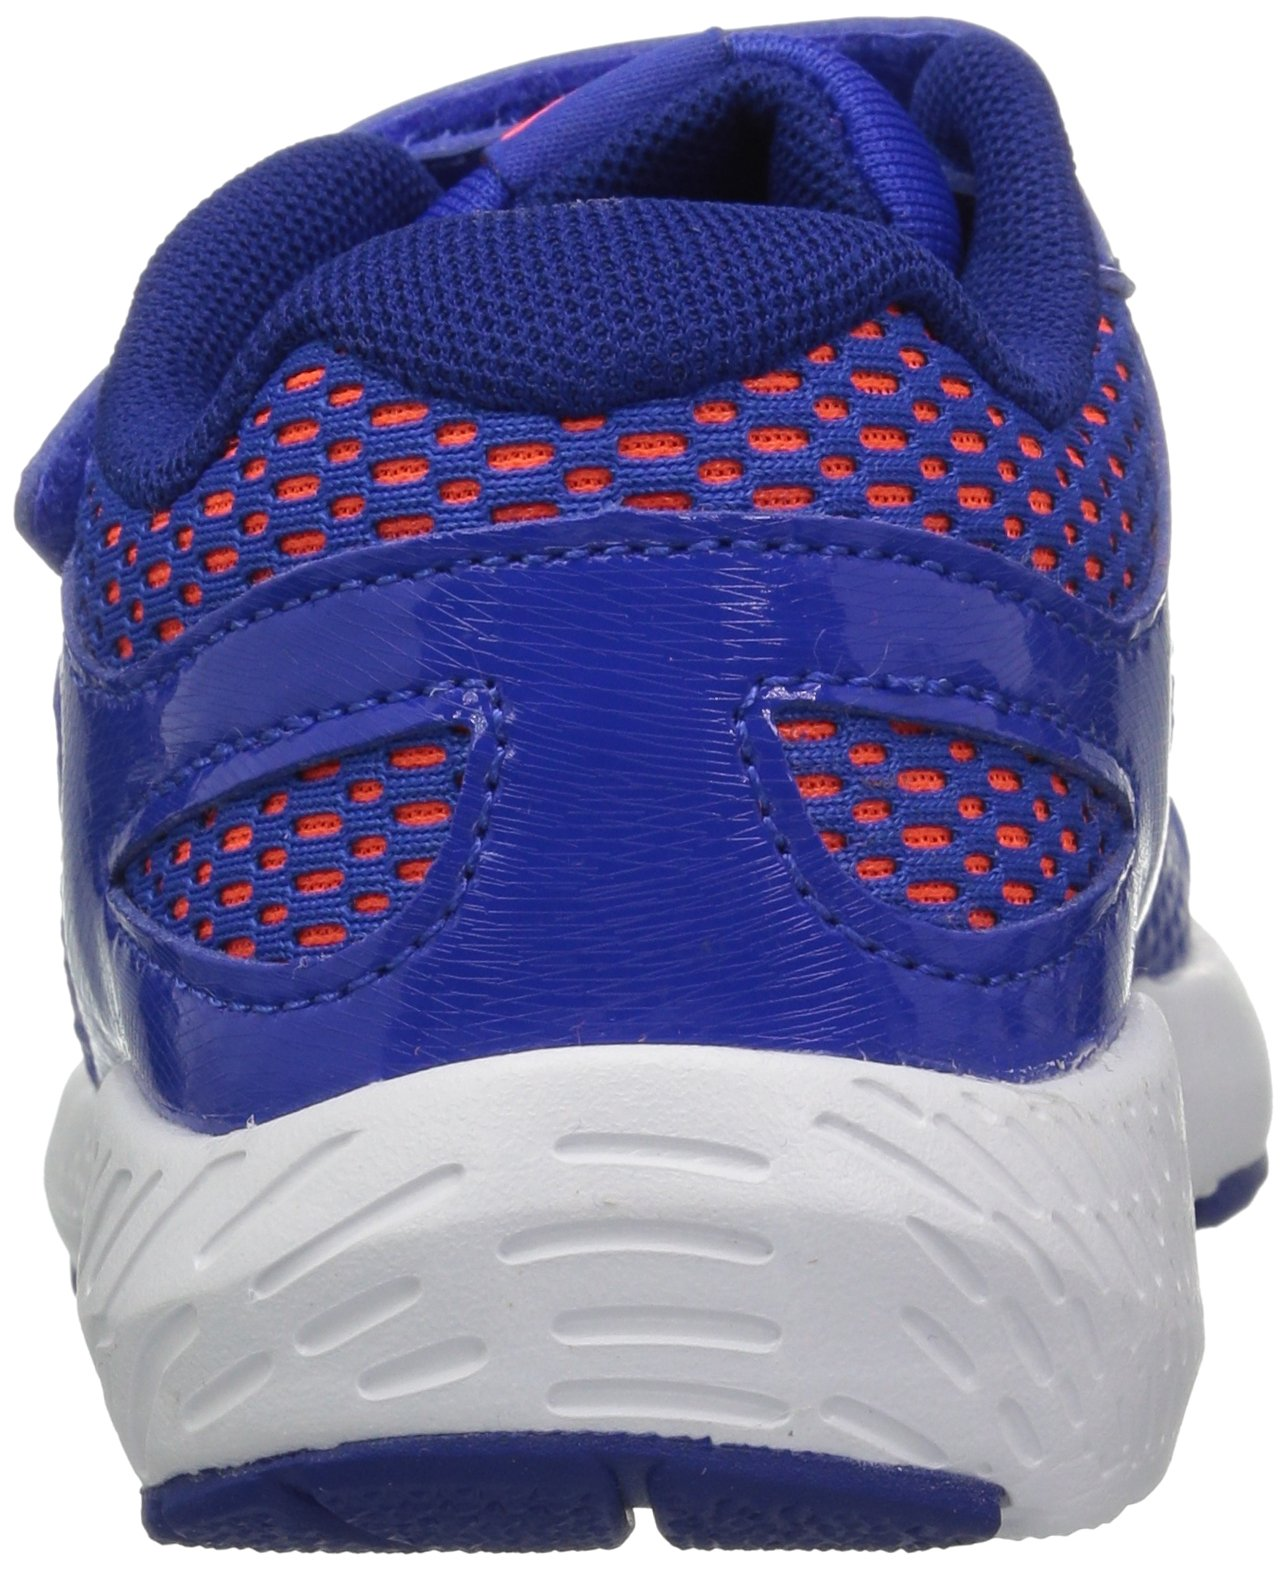 New Balance Boys' 519v1 Hook and Loop Running Shoe Pacific/Dynomite 2 M US Infant by New Balance (Image #2)